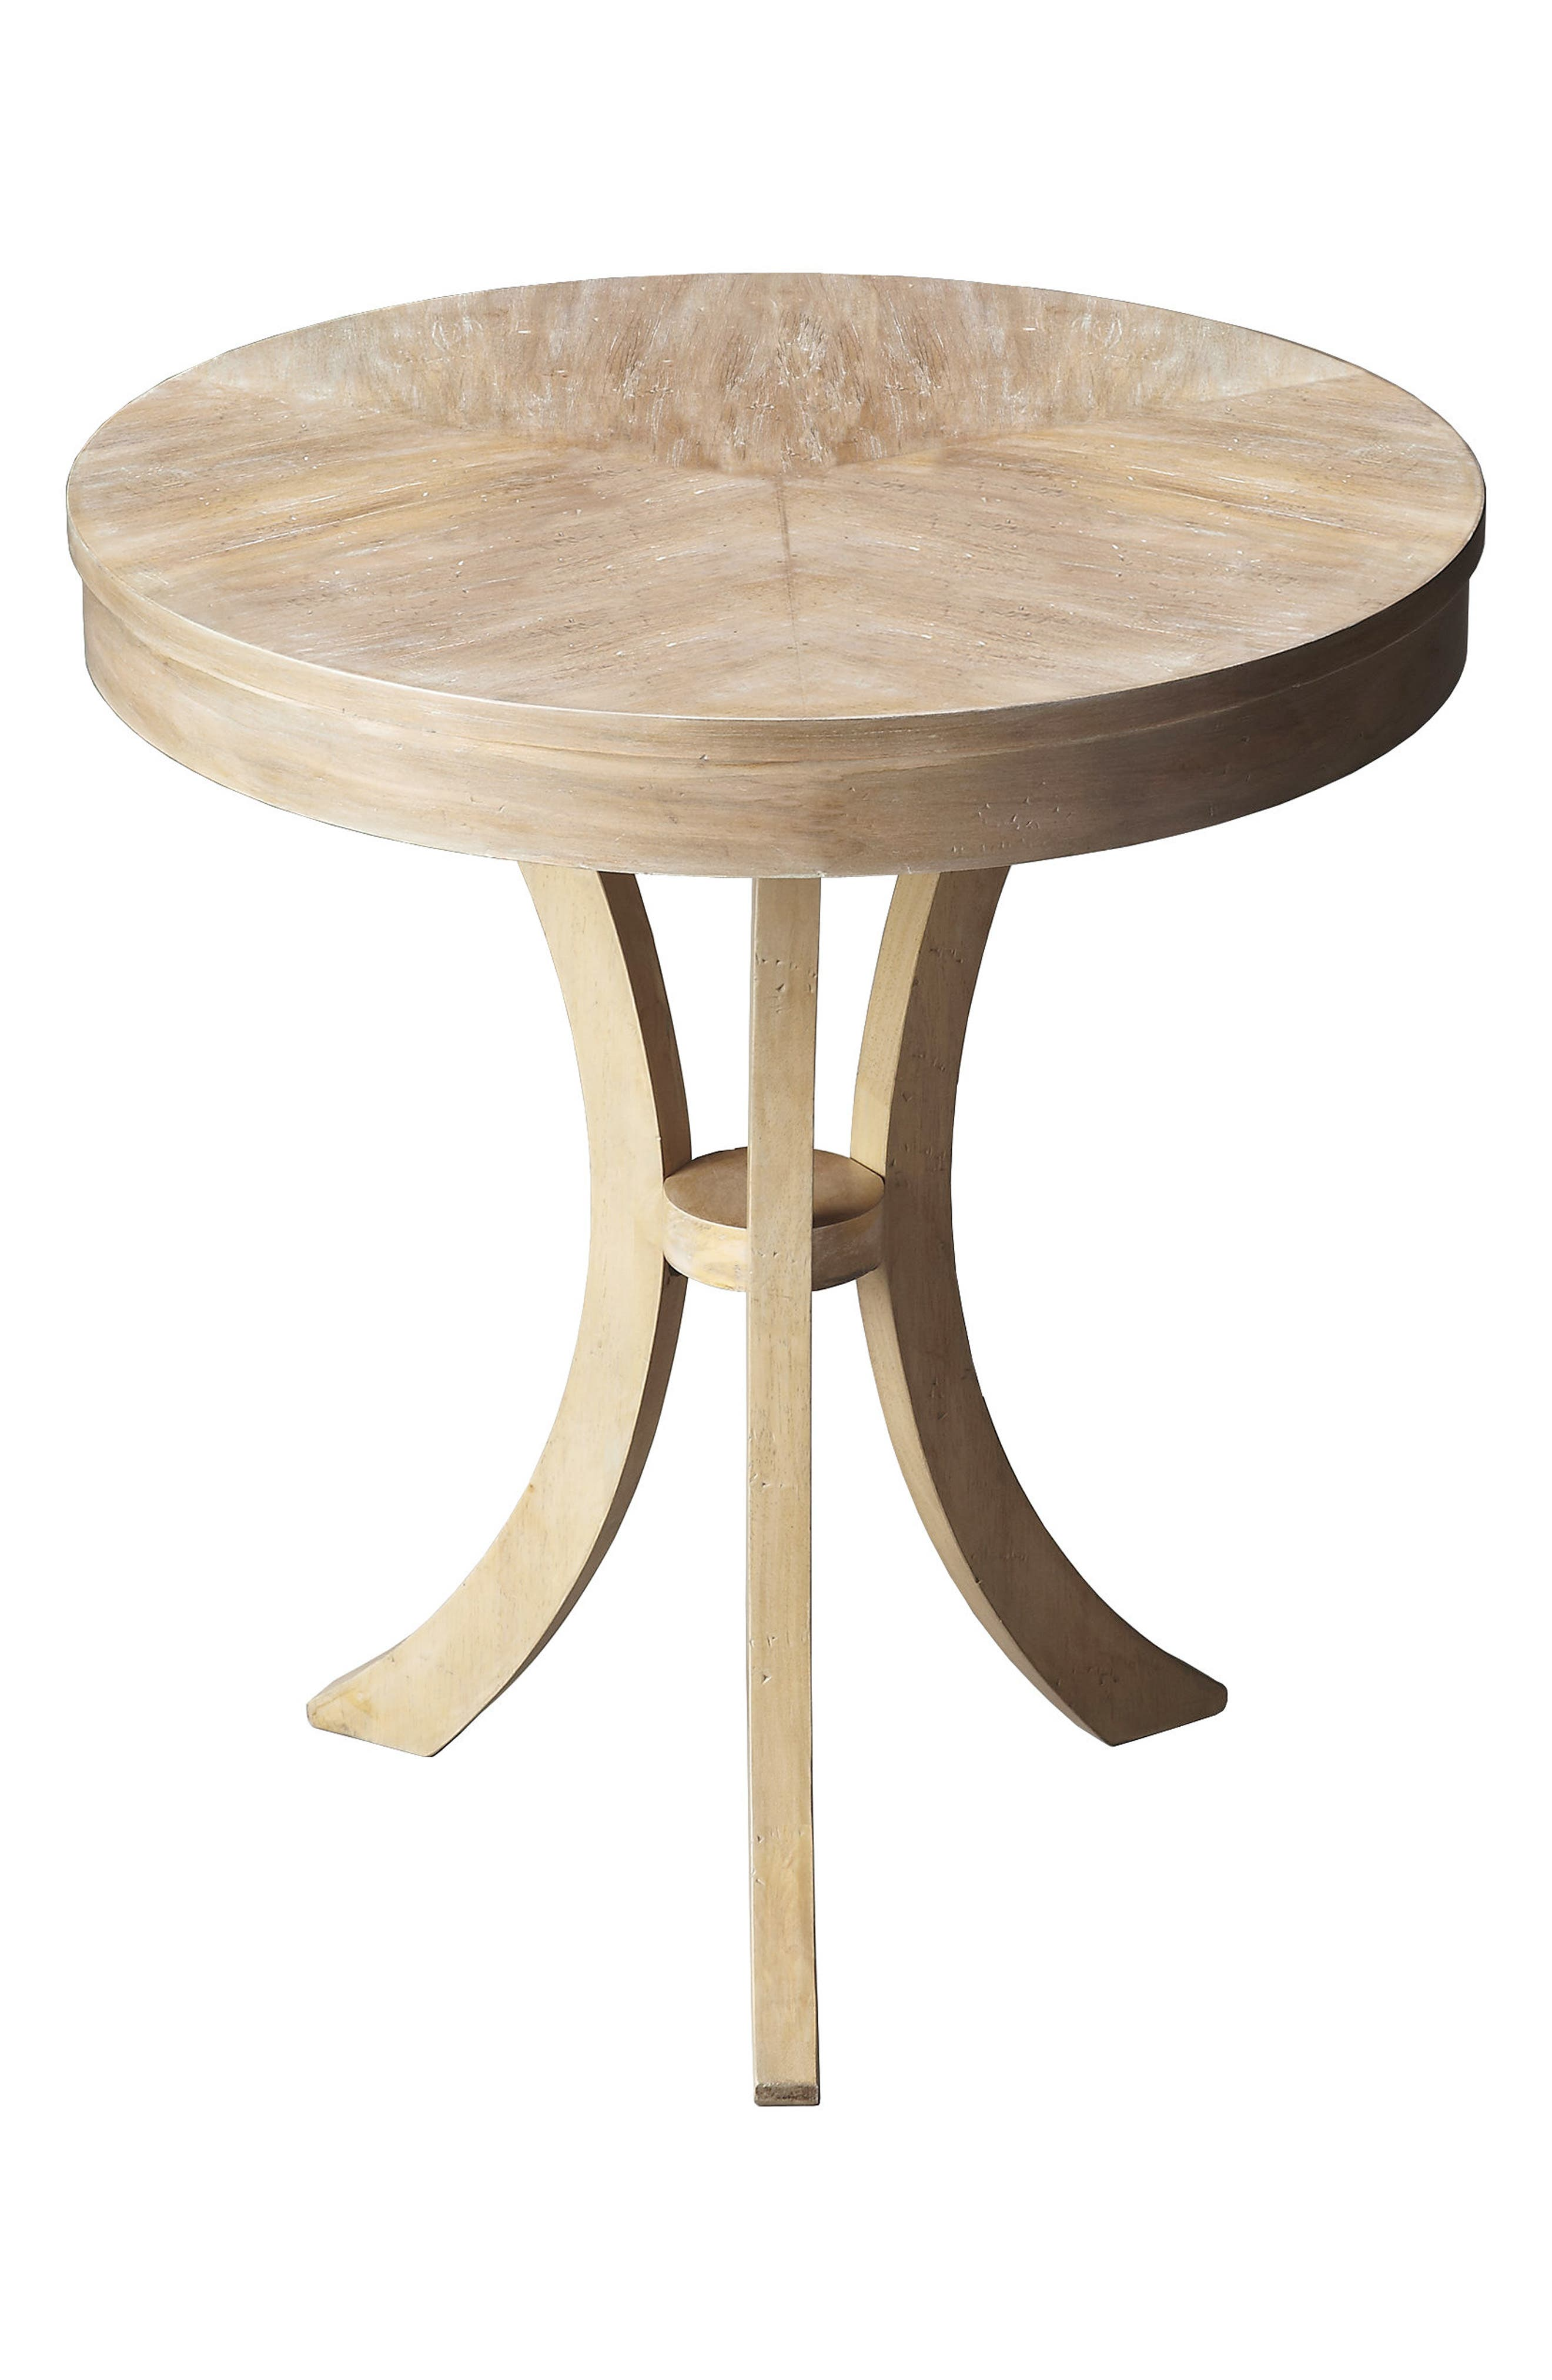 Round Accent Table,                             Main thumbnail 1, color,                             020